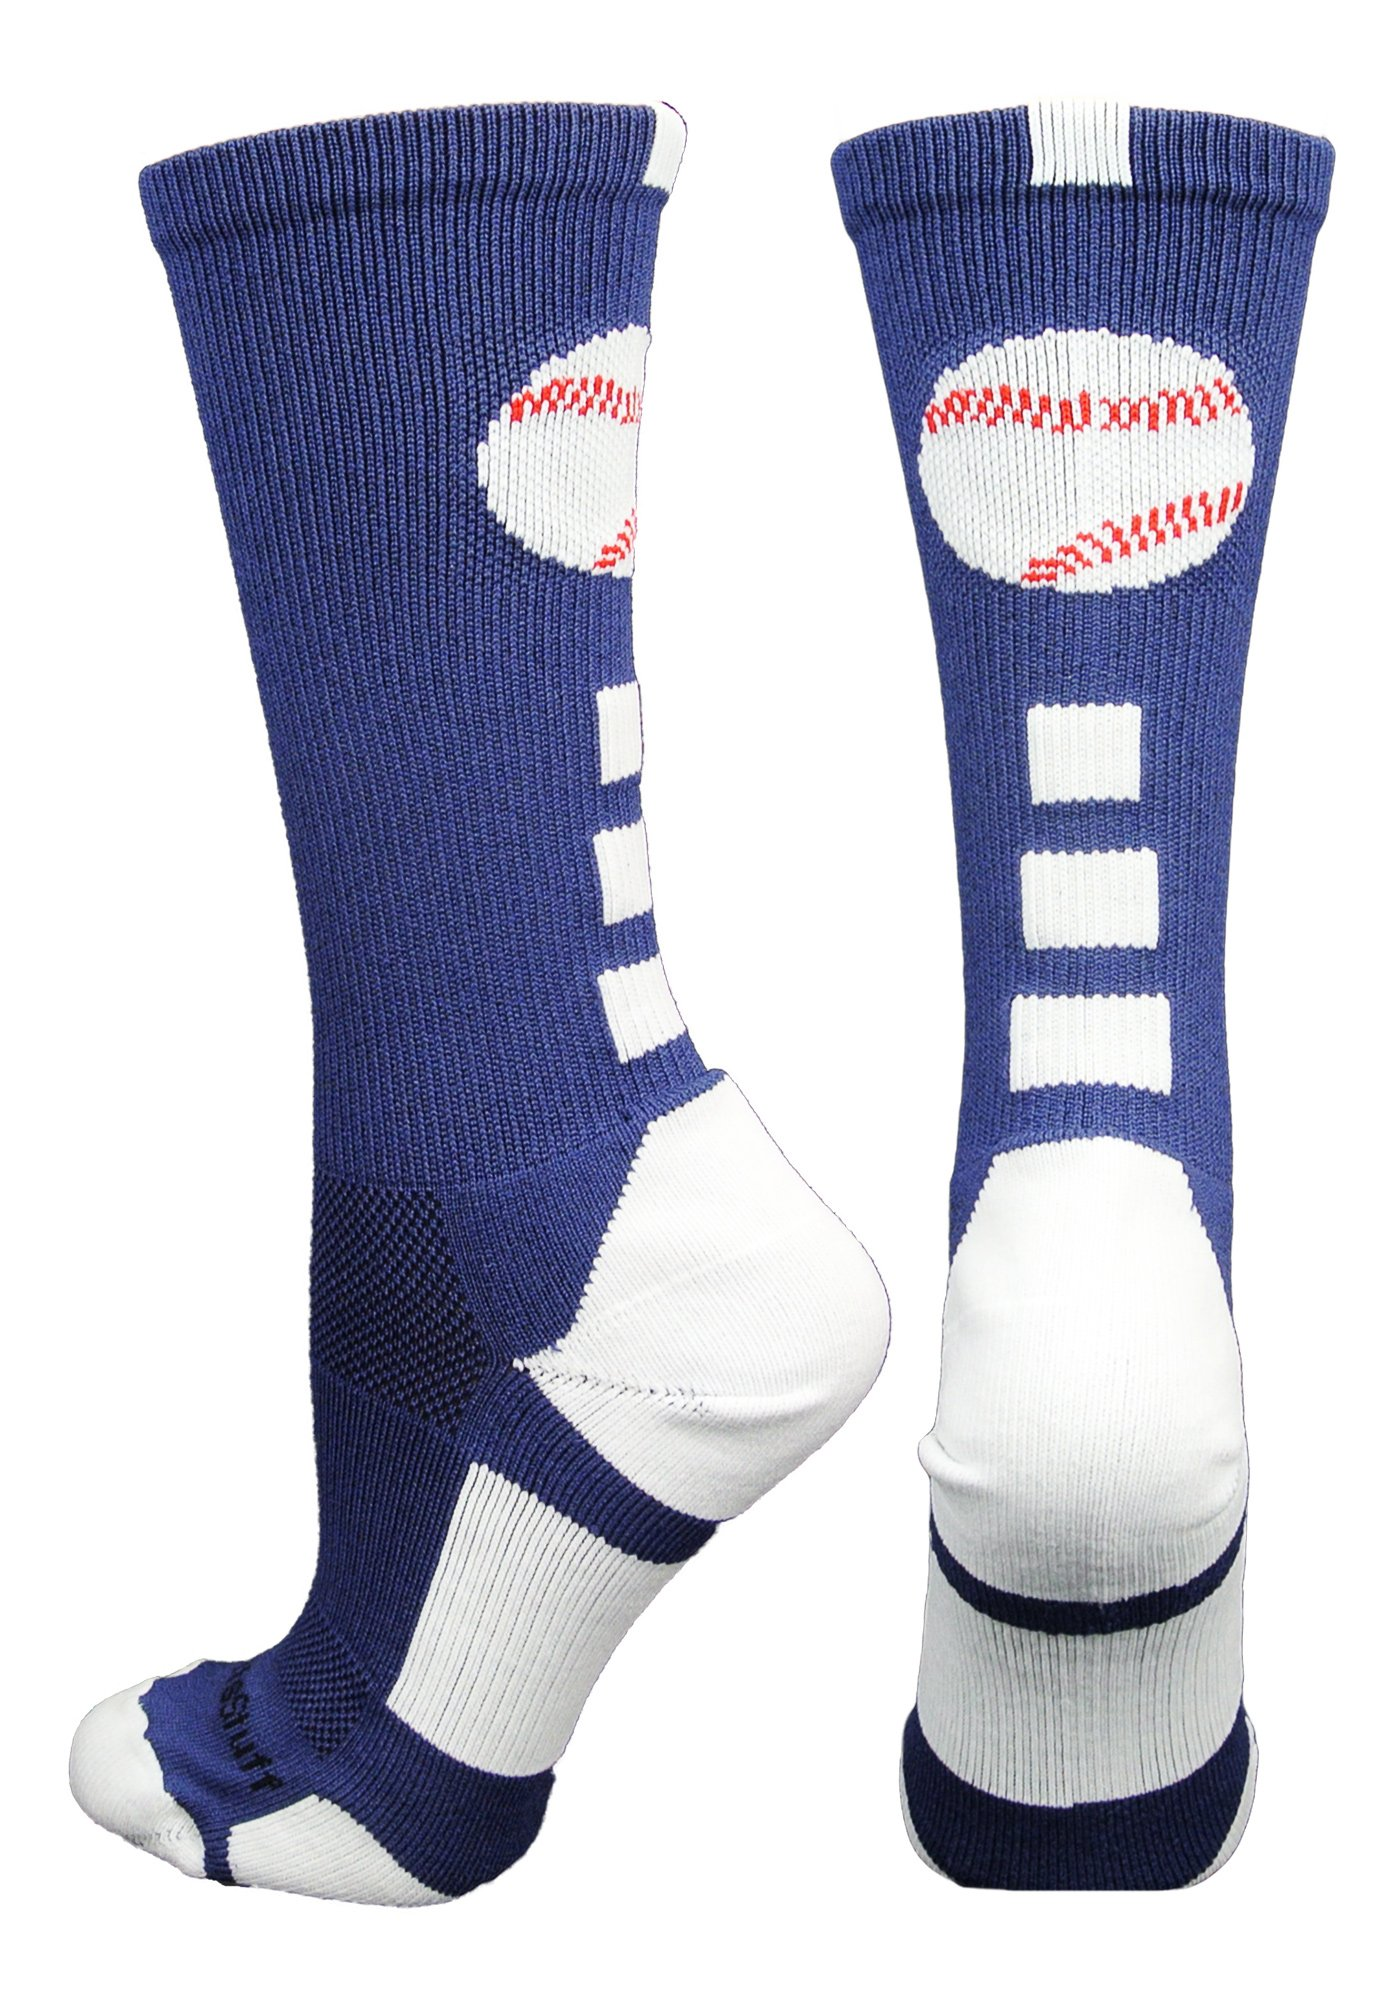 MadSportsStuff Baseball Logo Crew Socks (Navy/White, Medium) by MadSportsStuff